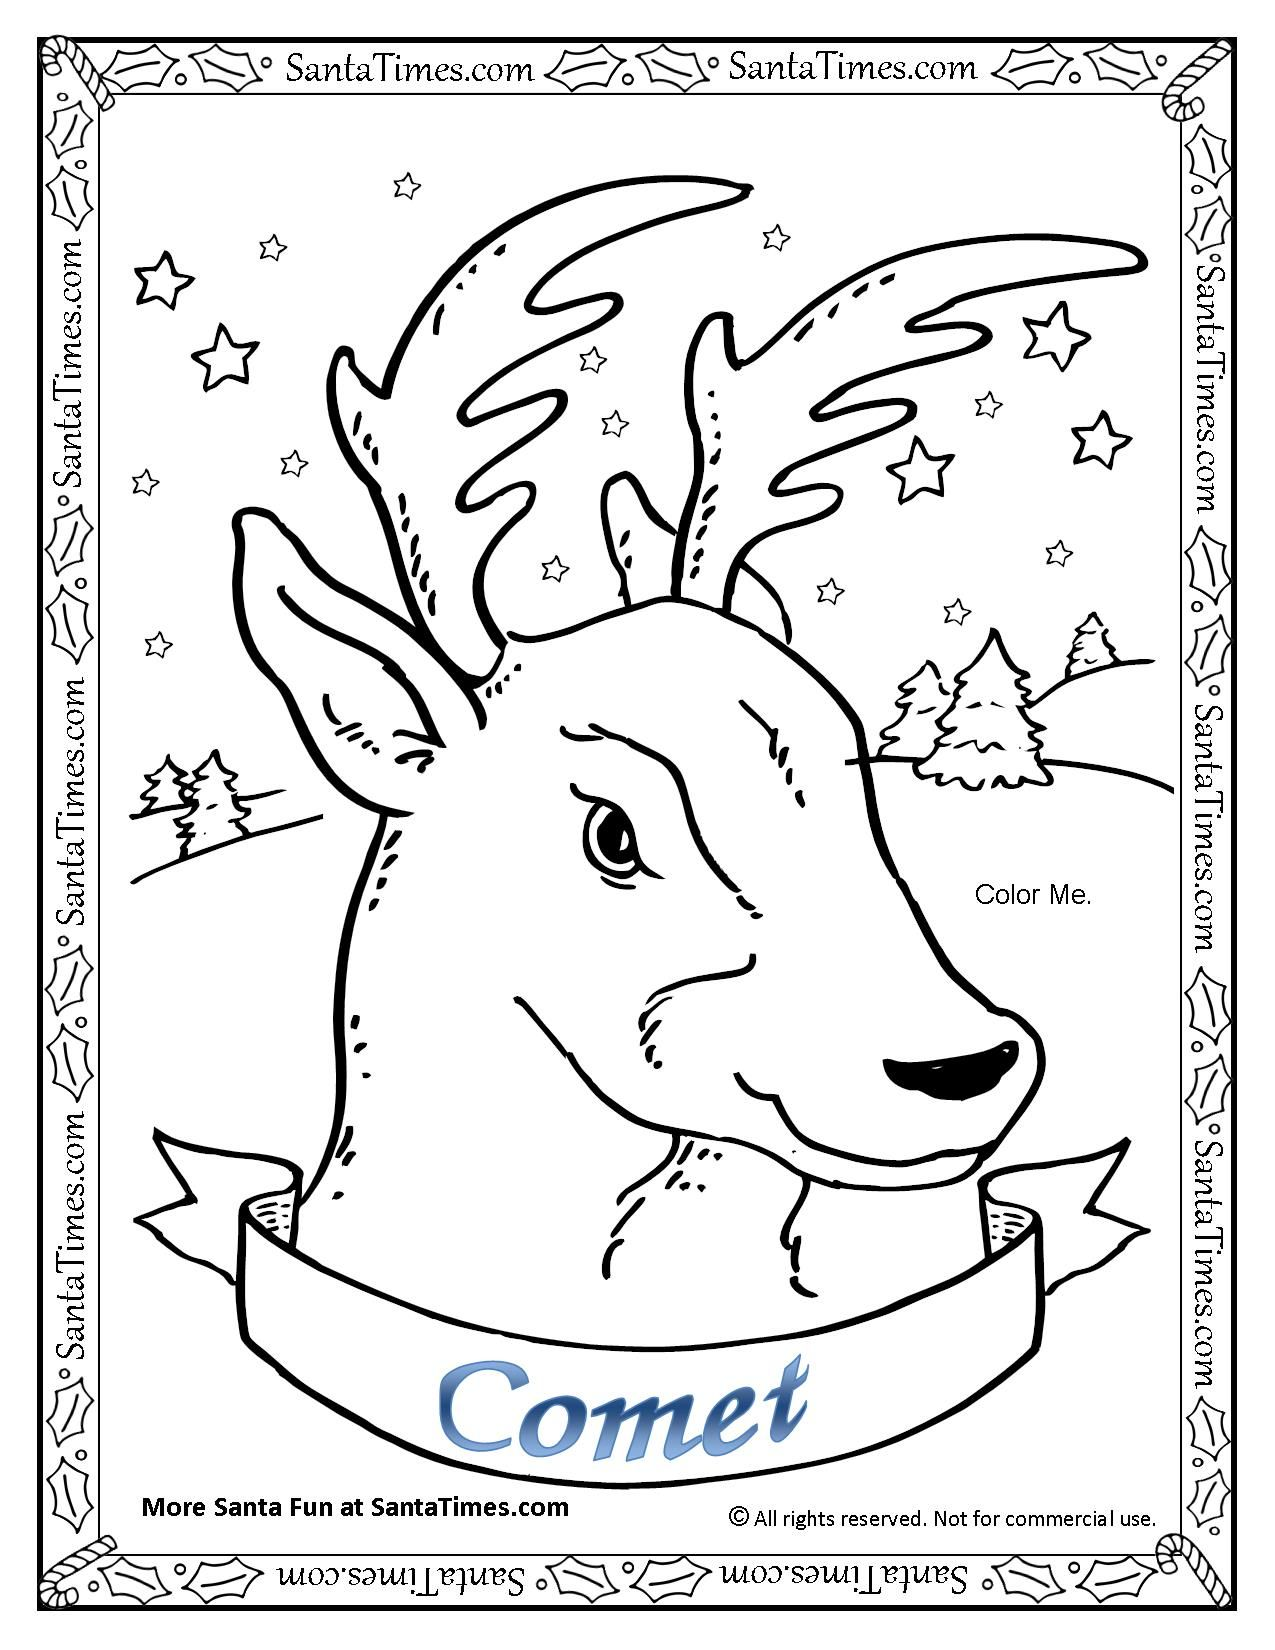 Comet The Reindeer Coloring Page More Reindeer Coloring Pages